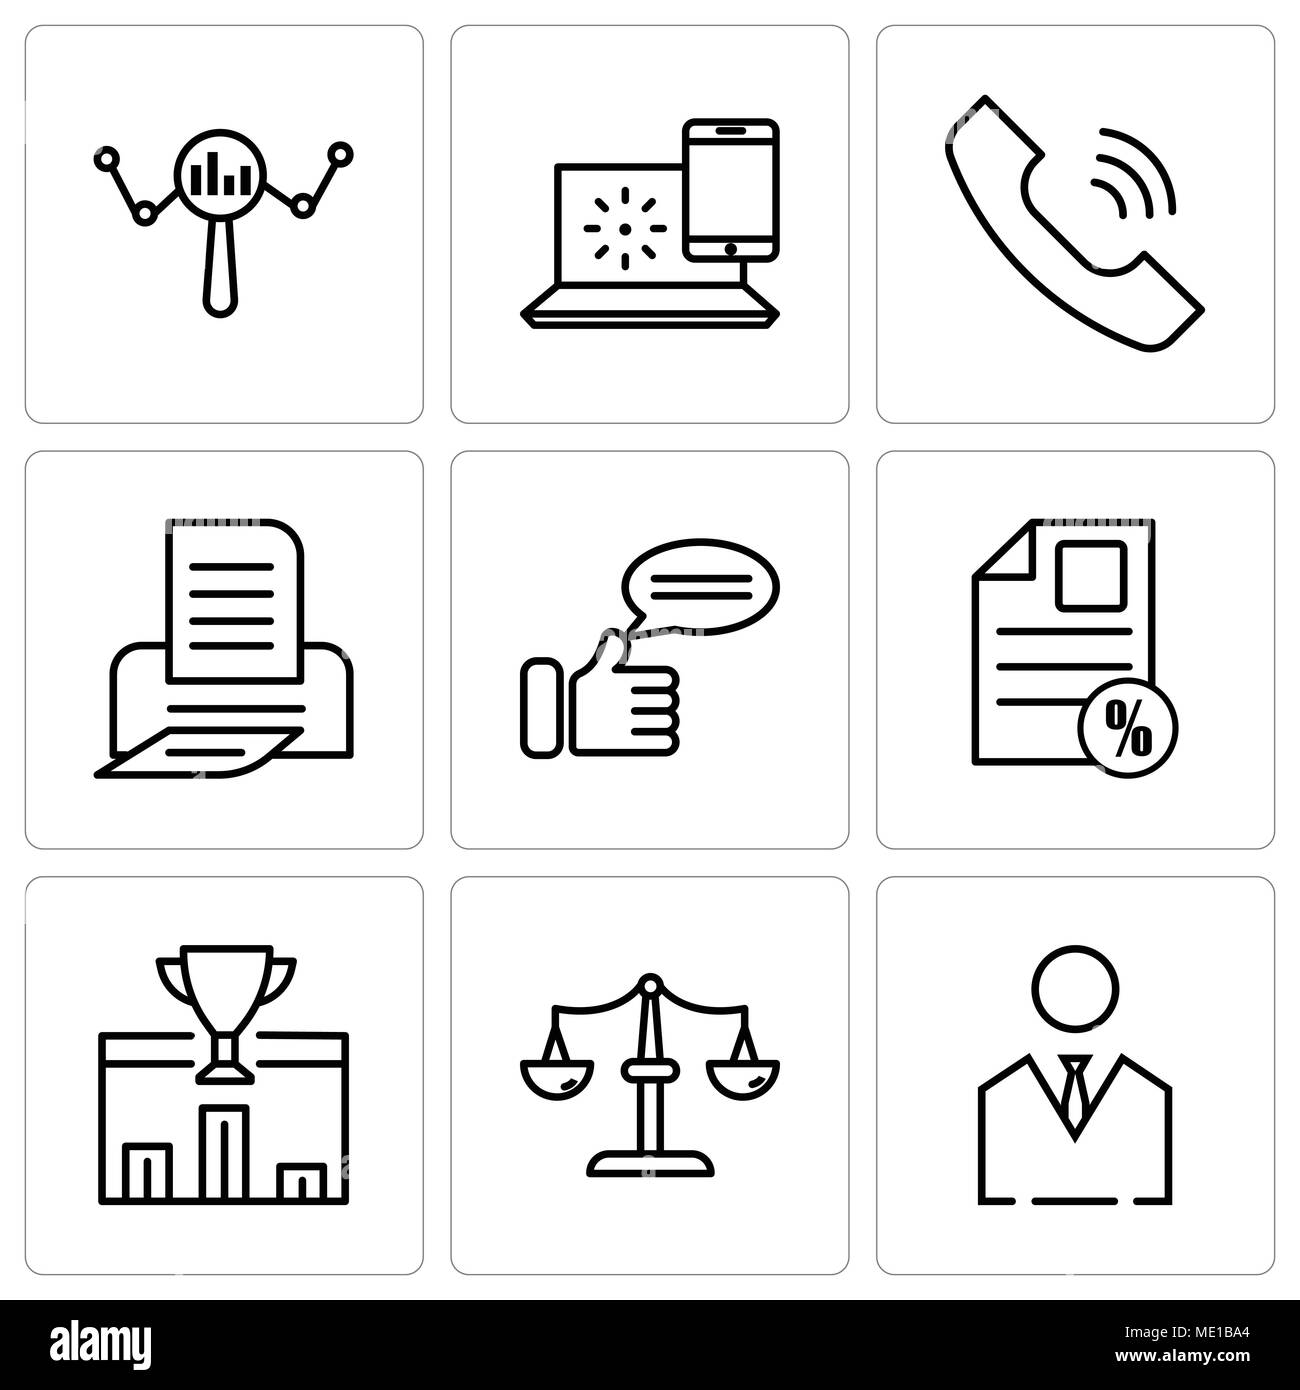 Set Of 9 simple editable icons such as business man, scales, 1st place, document percent, comment, print, call, internet, search, can be used for mobi - Stock Vector